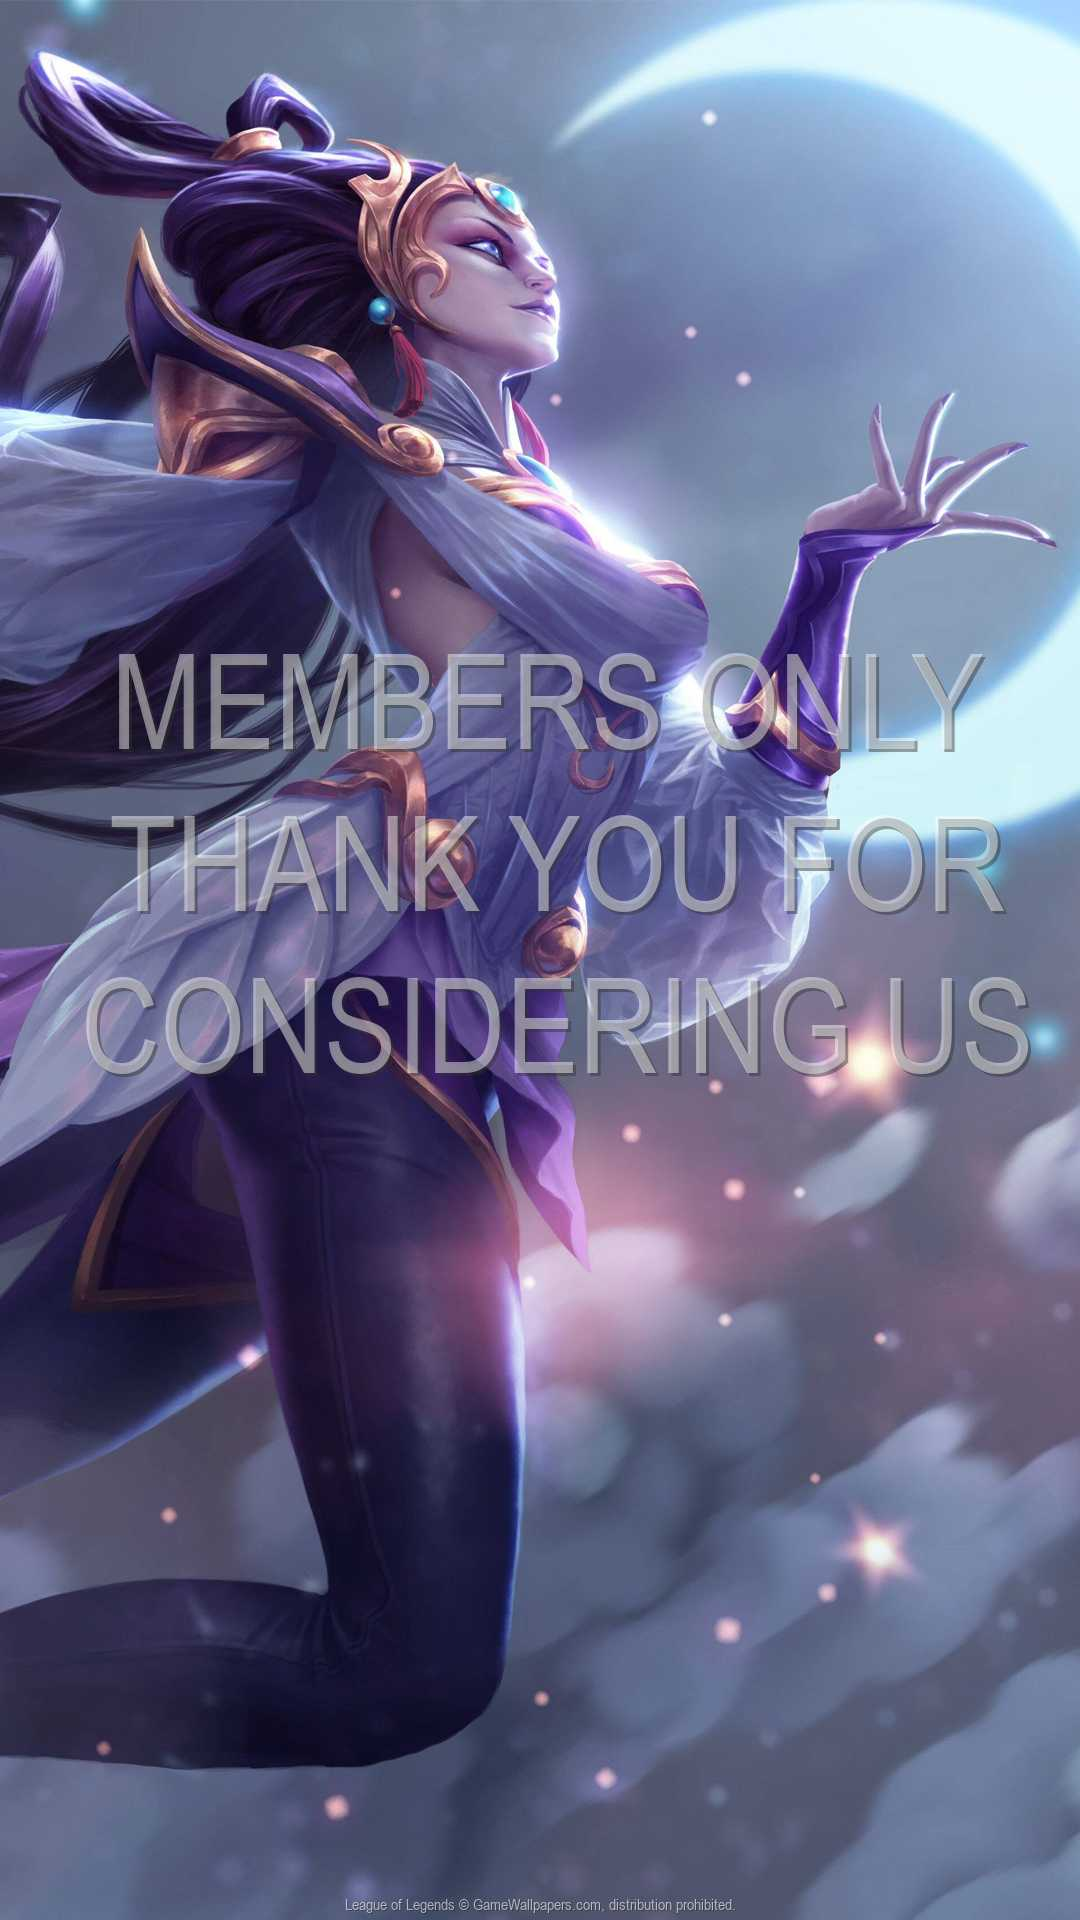 League of Legends 1080p Vertical Mobile wallpaper or background 38